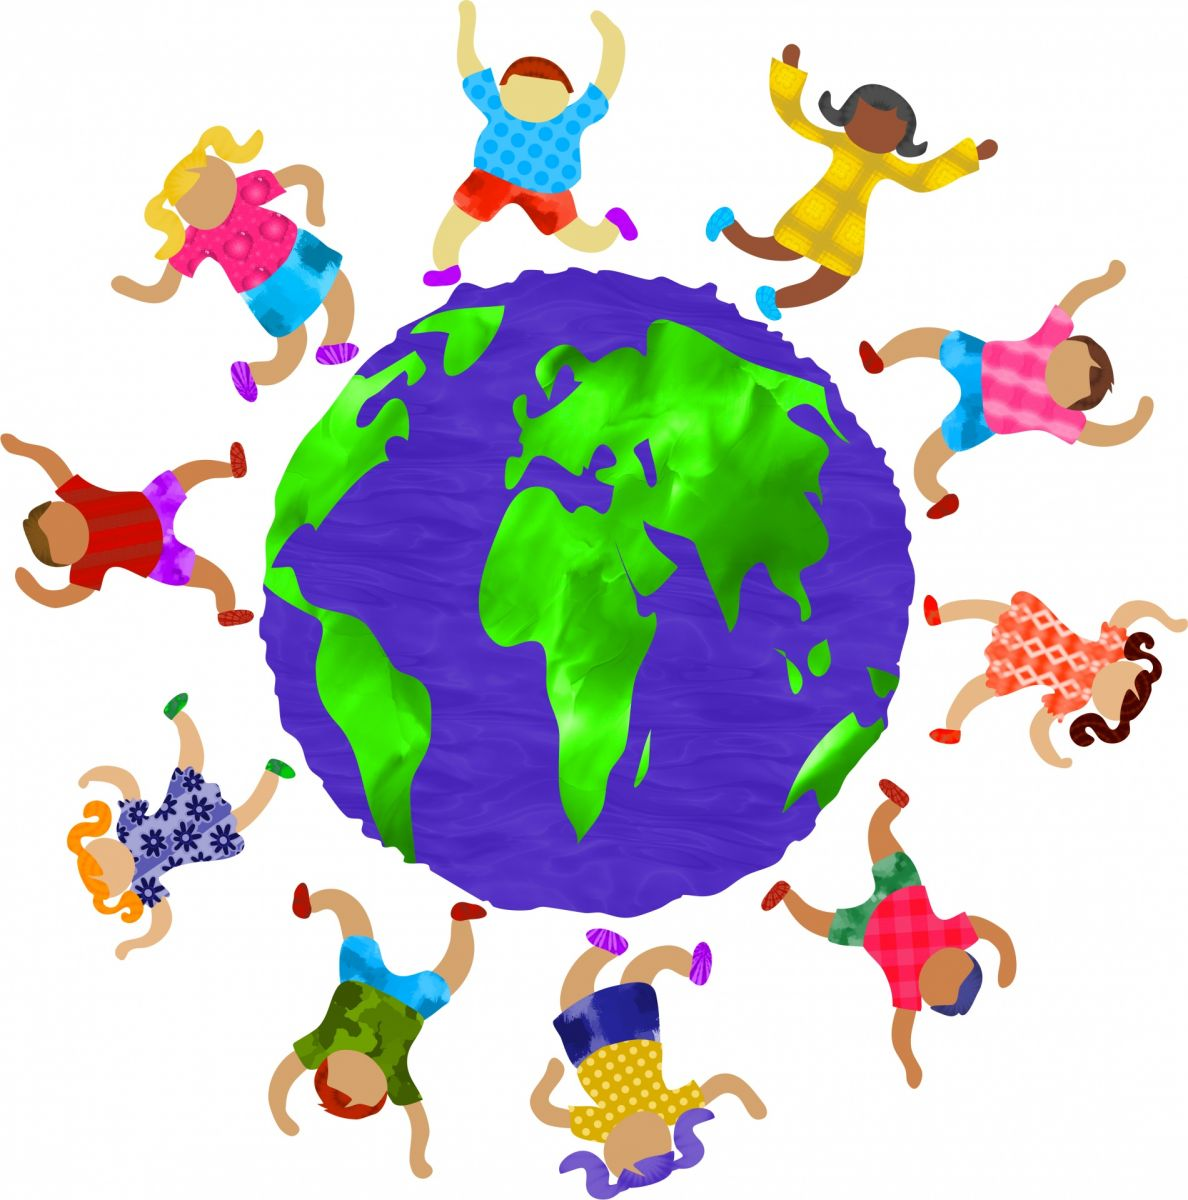 Children of all races and genders dance around a globe.